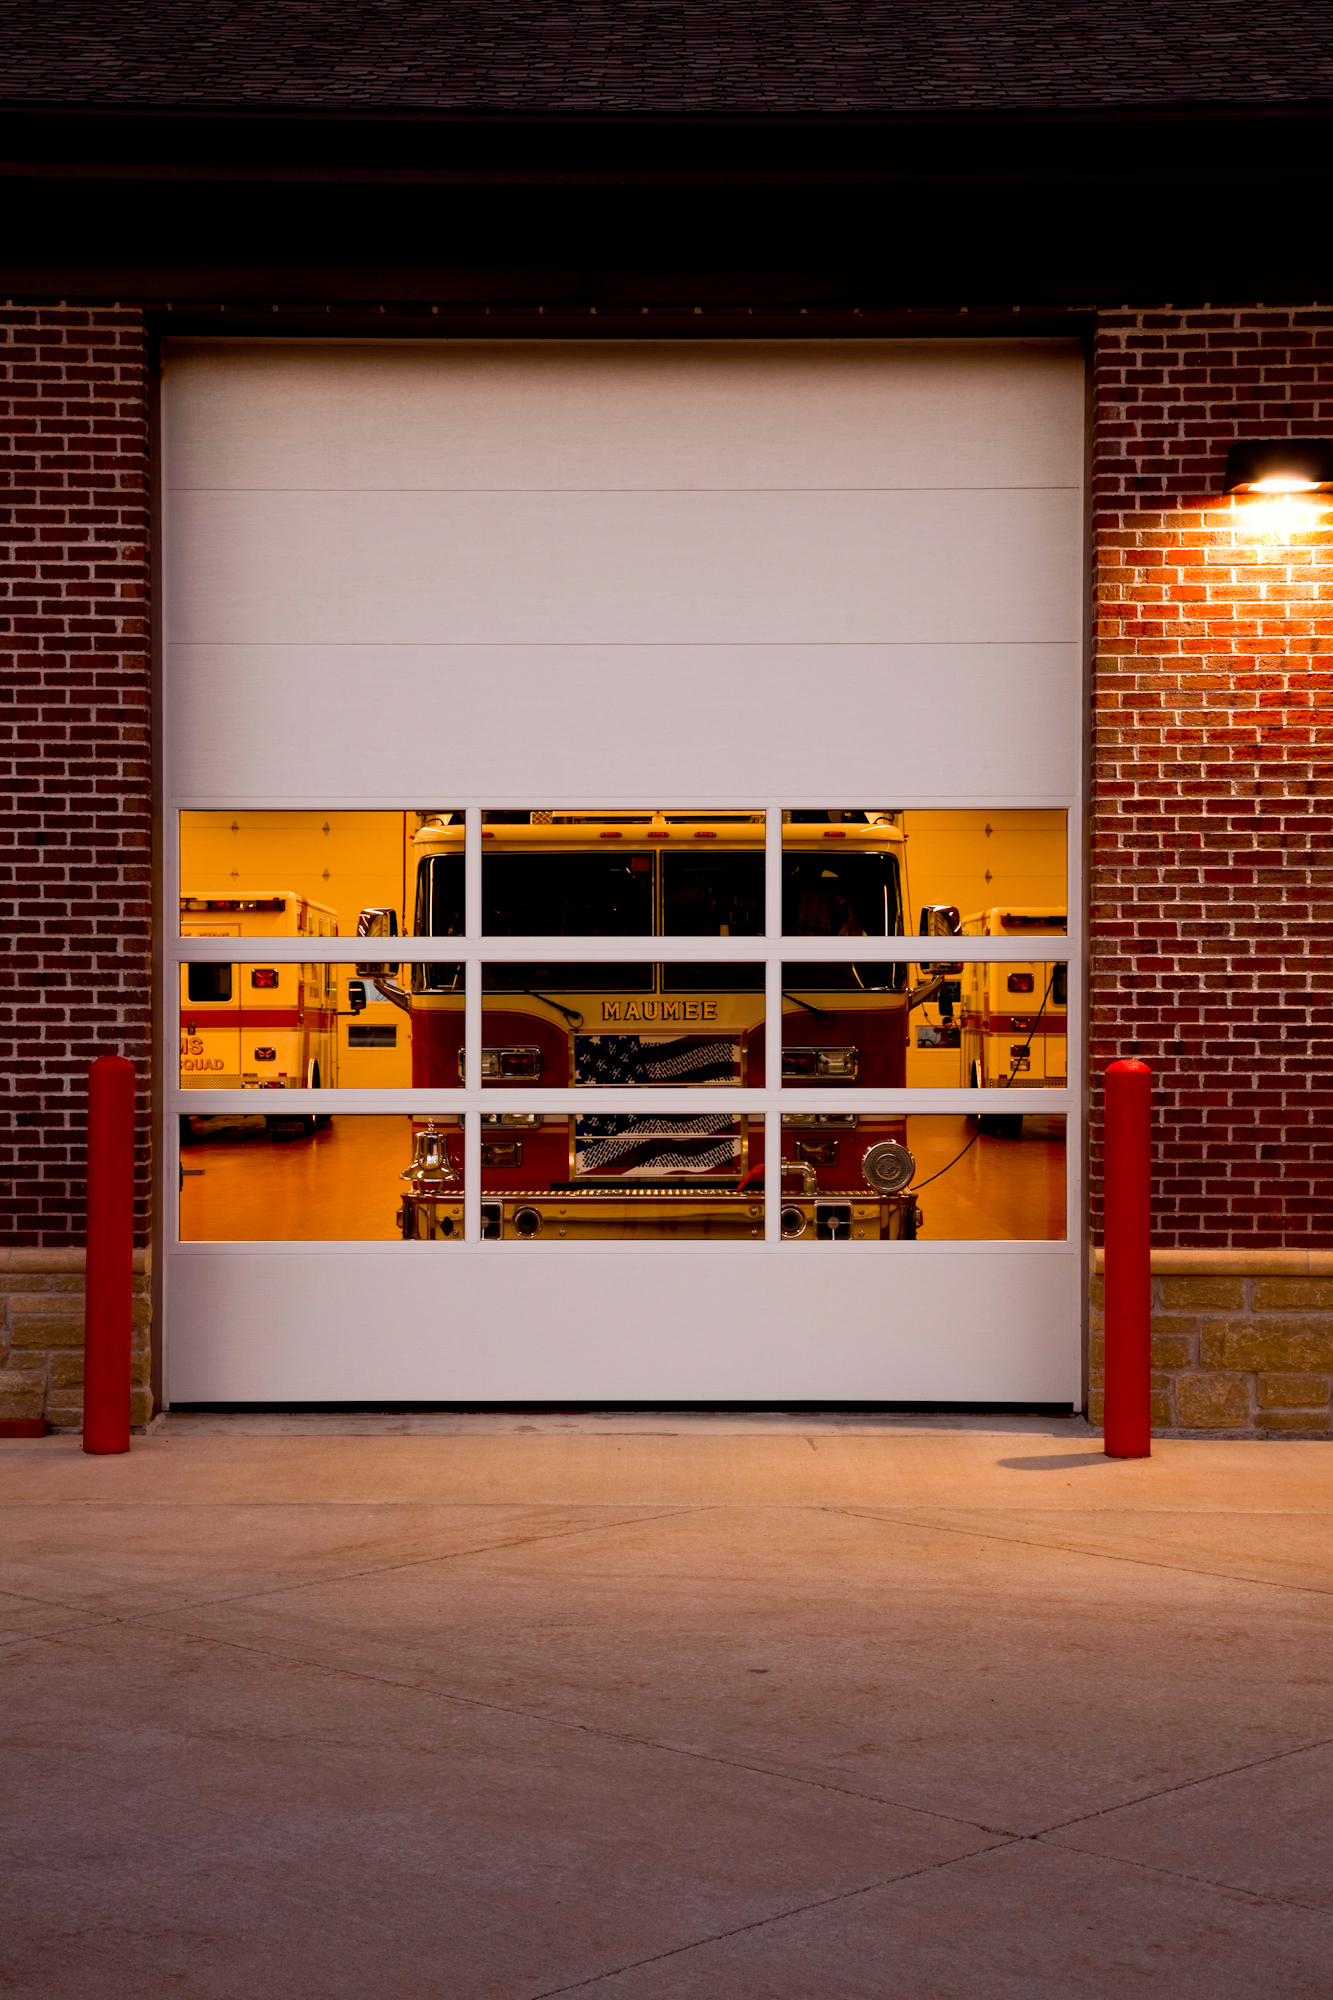 2000 #CA8001 Gfx/products/000116/106.jpg pic Residential Garage Doors Direct 38211333